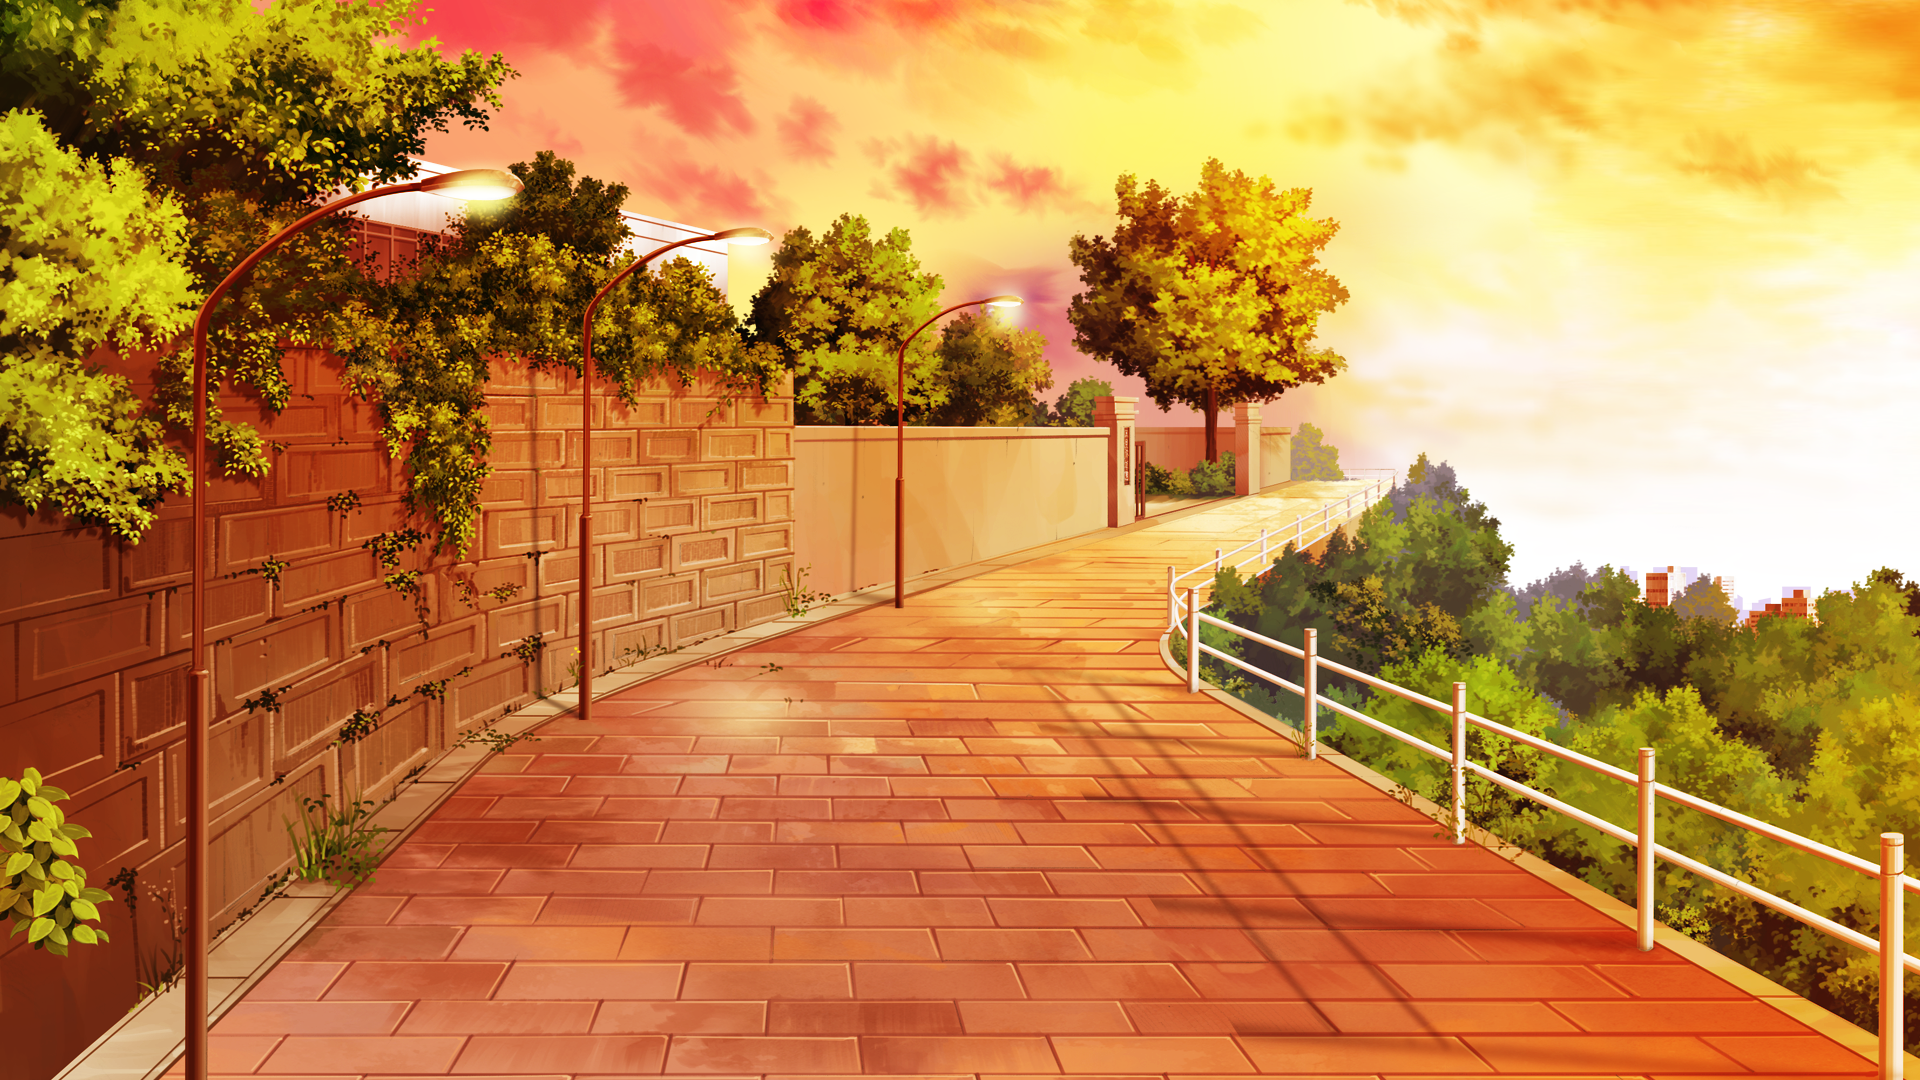 Png scenery backgrounds free scenery - Anime scenery wallpaper laptop ...